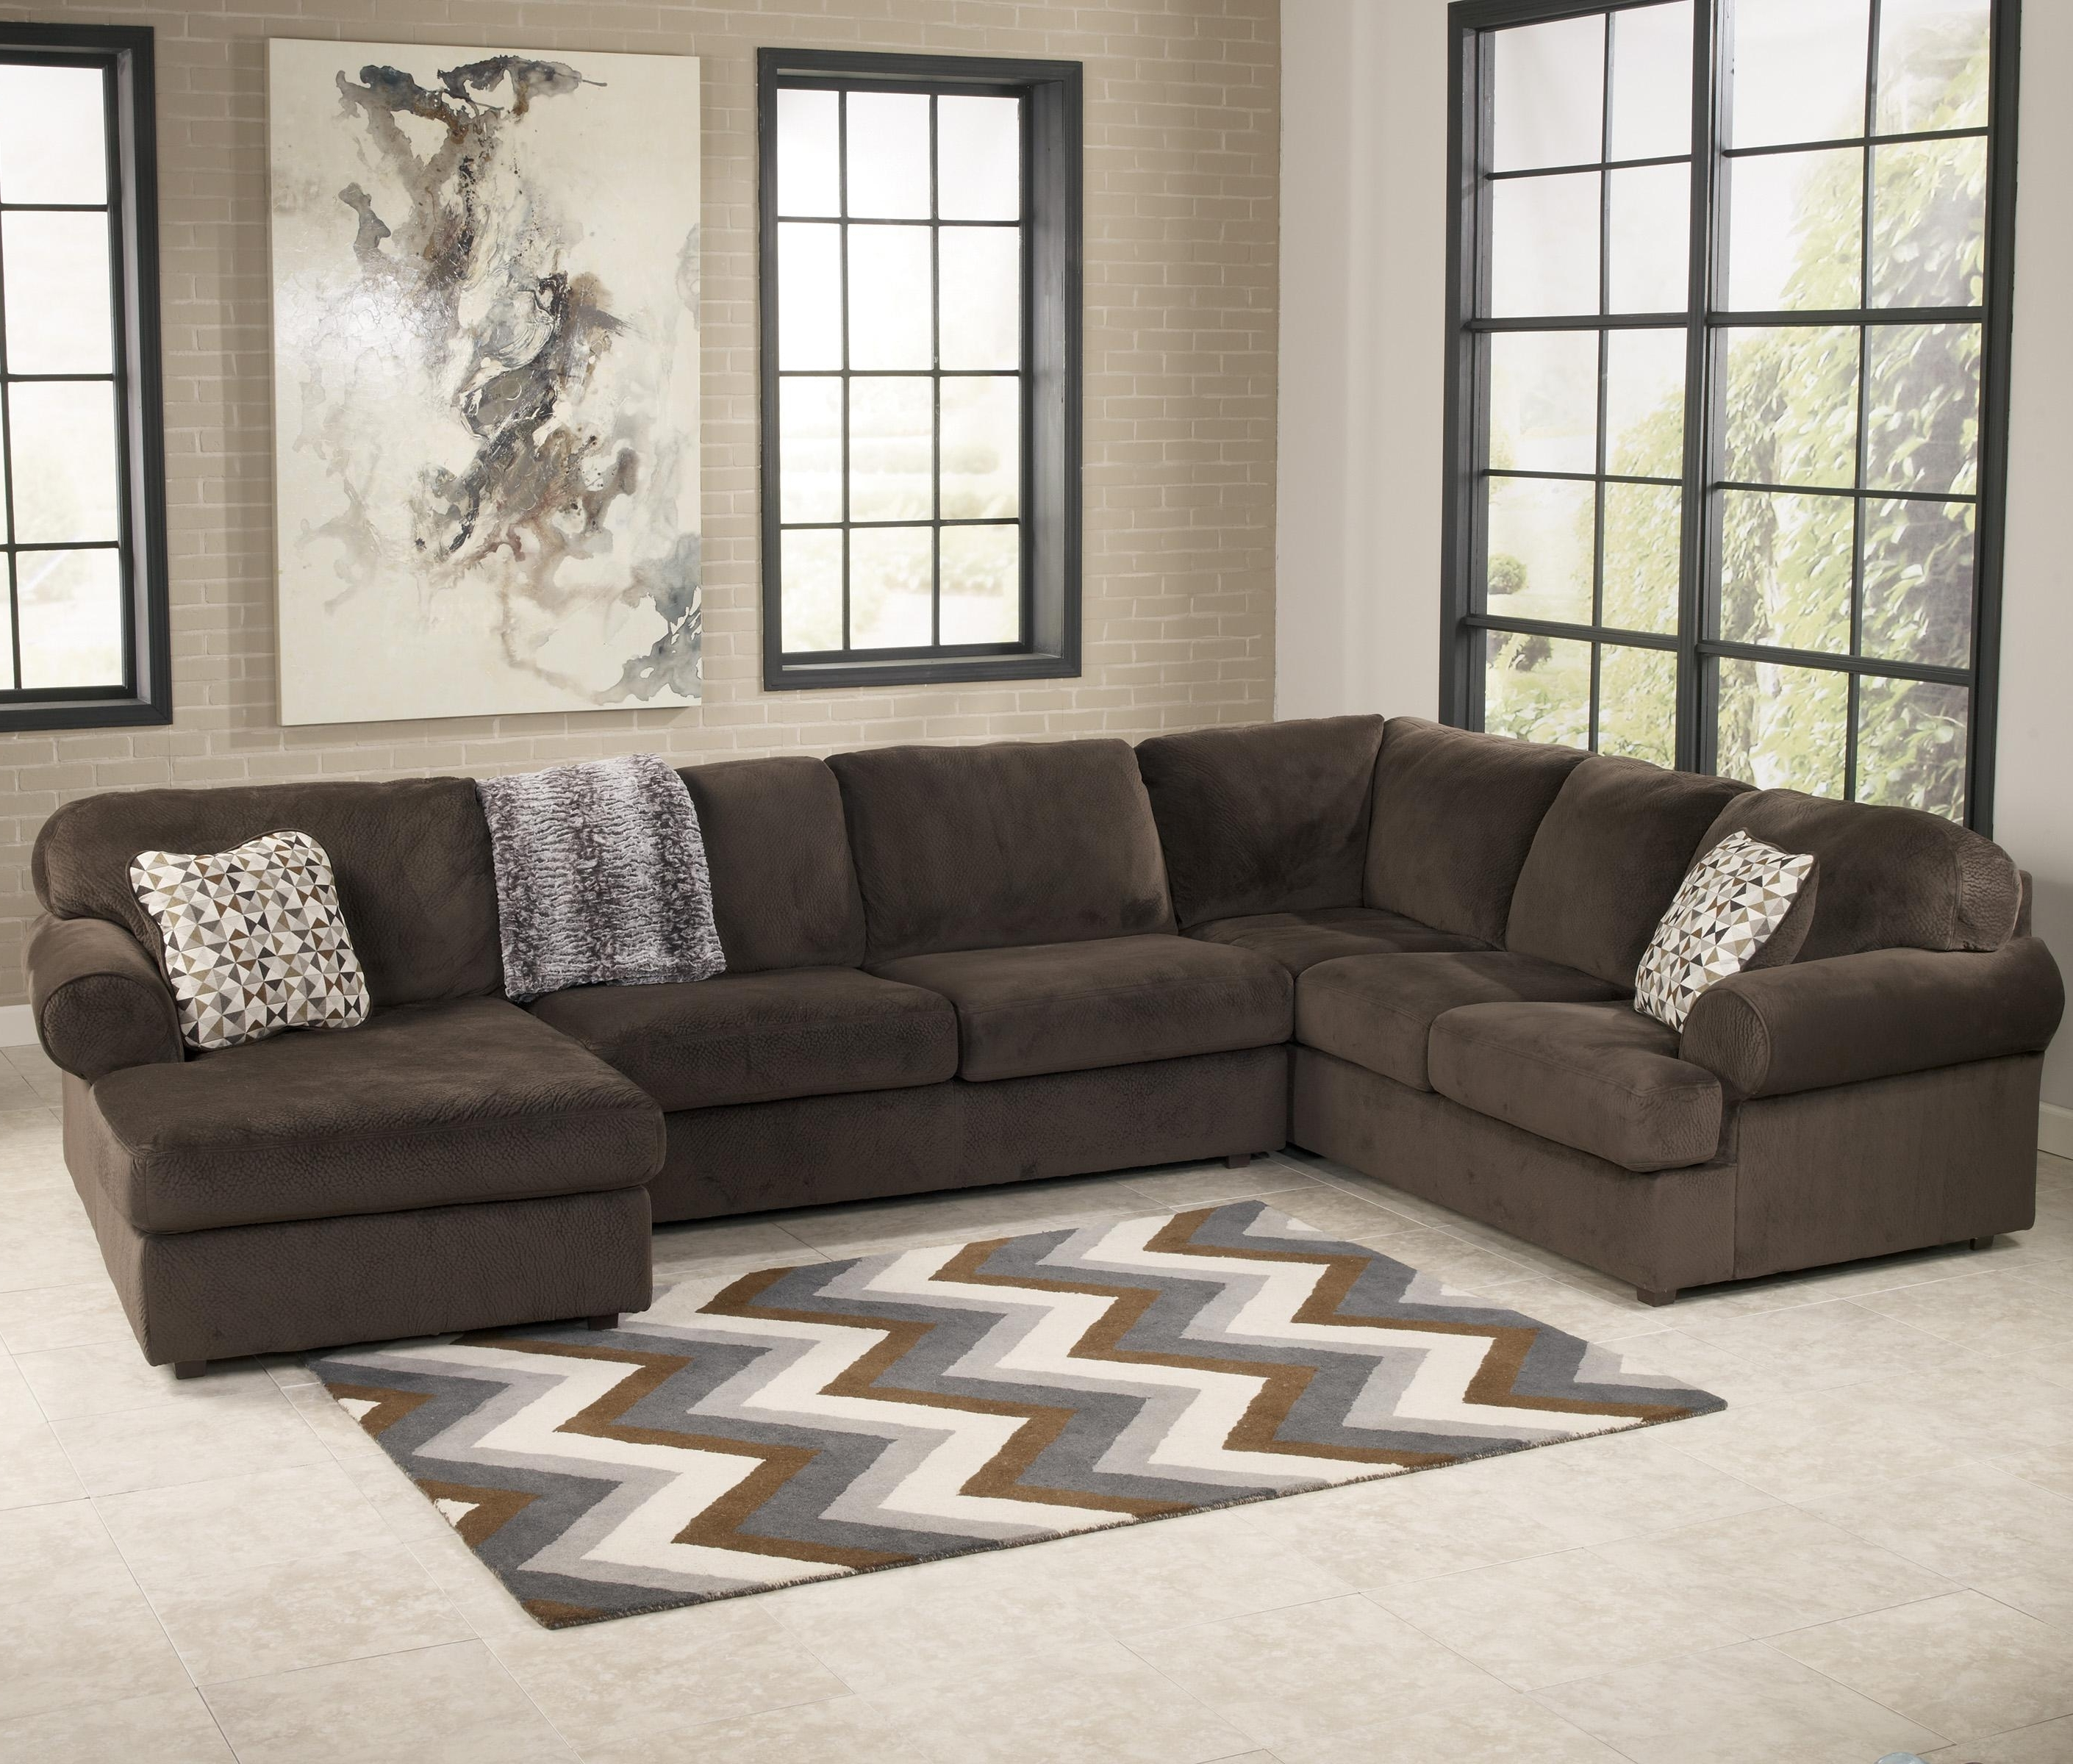 Sectional Sofas At Ashley Furniture Intended For Popular Sofa : Ashley Jessa Place Sectional Sofa Ashley Sectional Sofa (View 15 of 15)